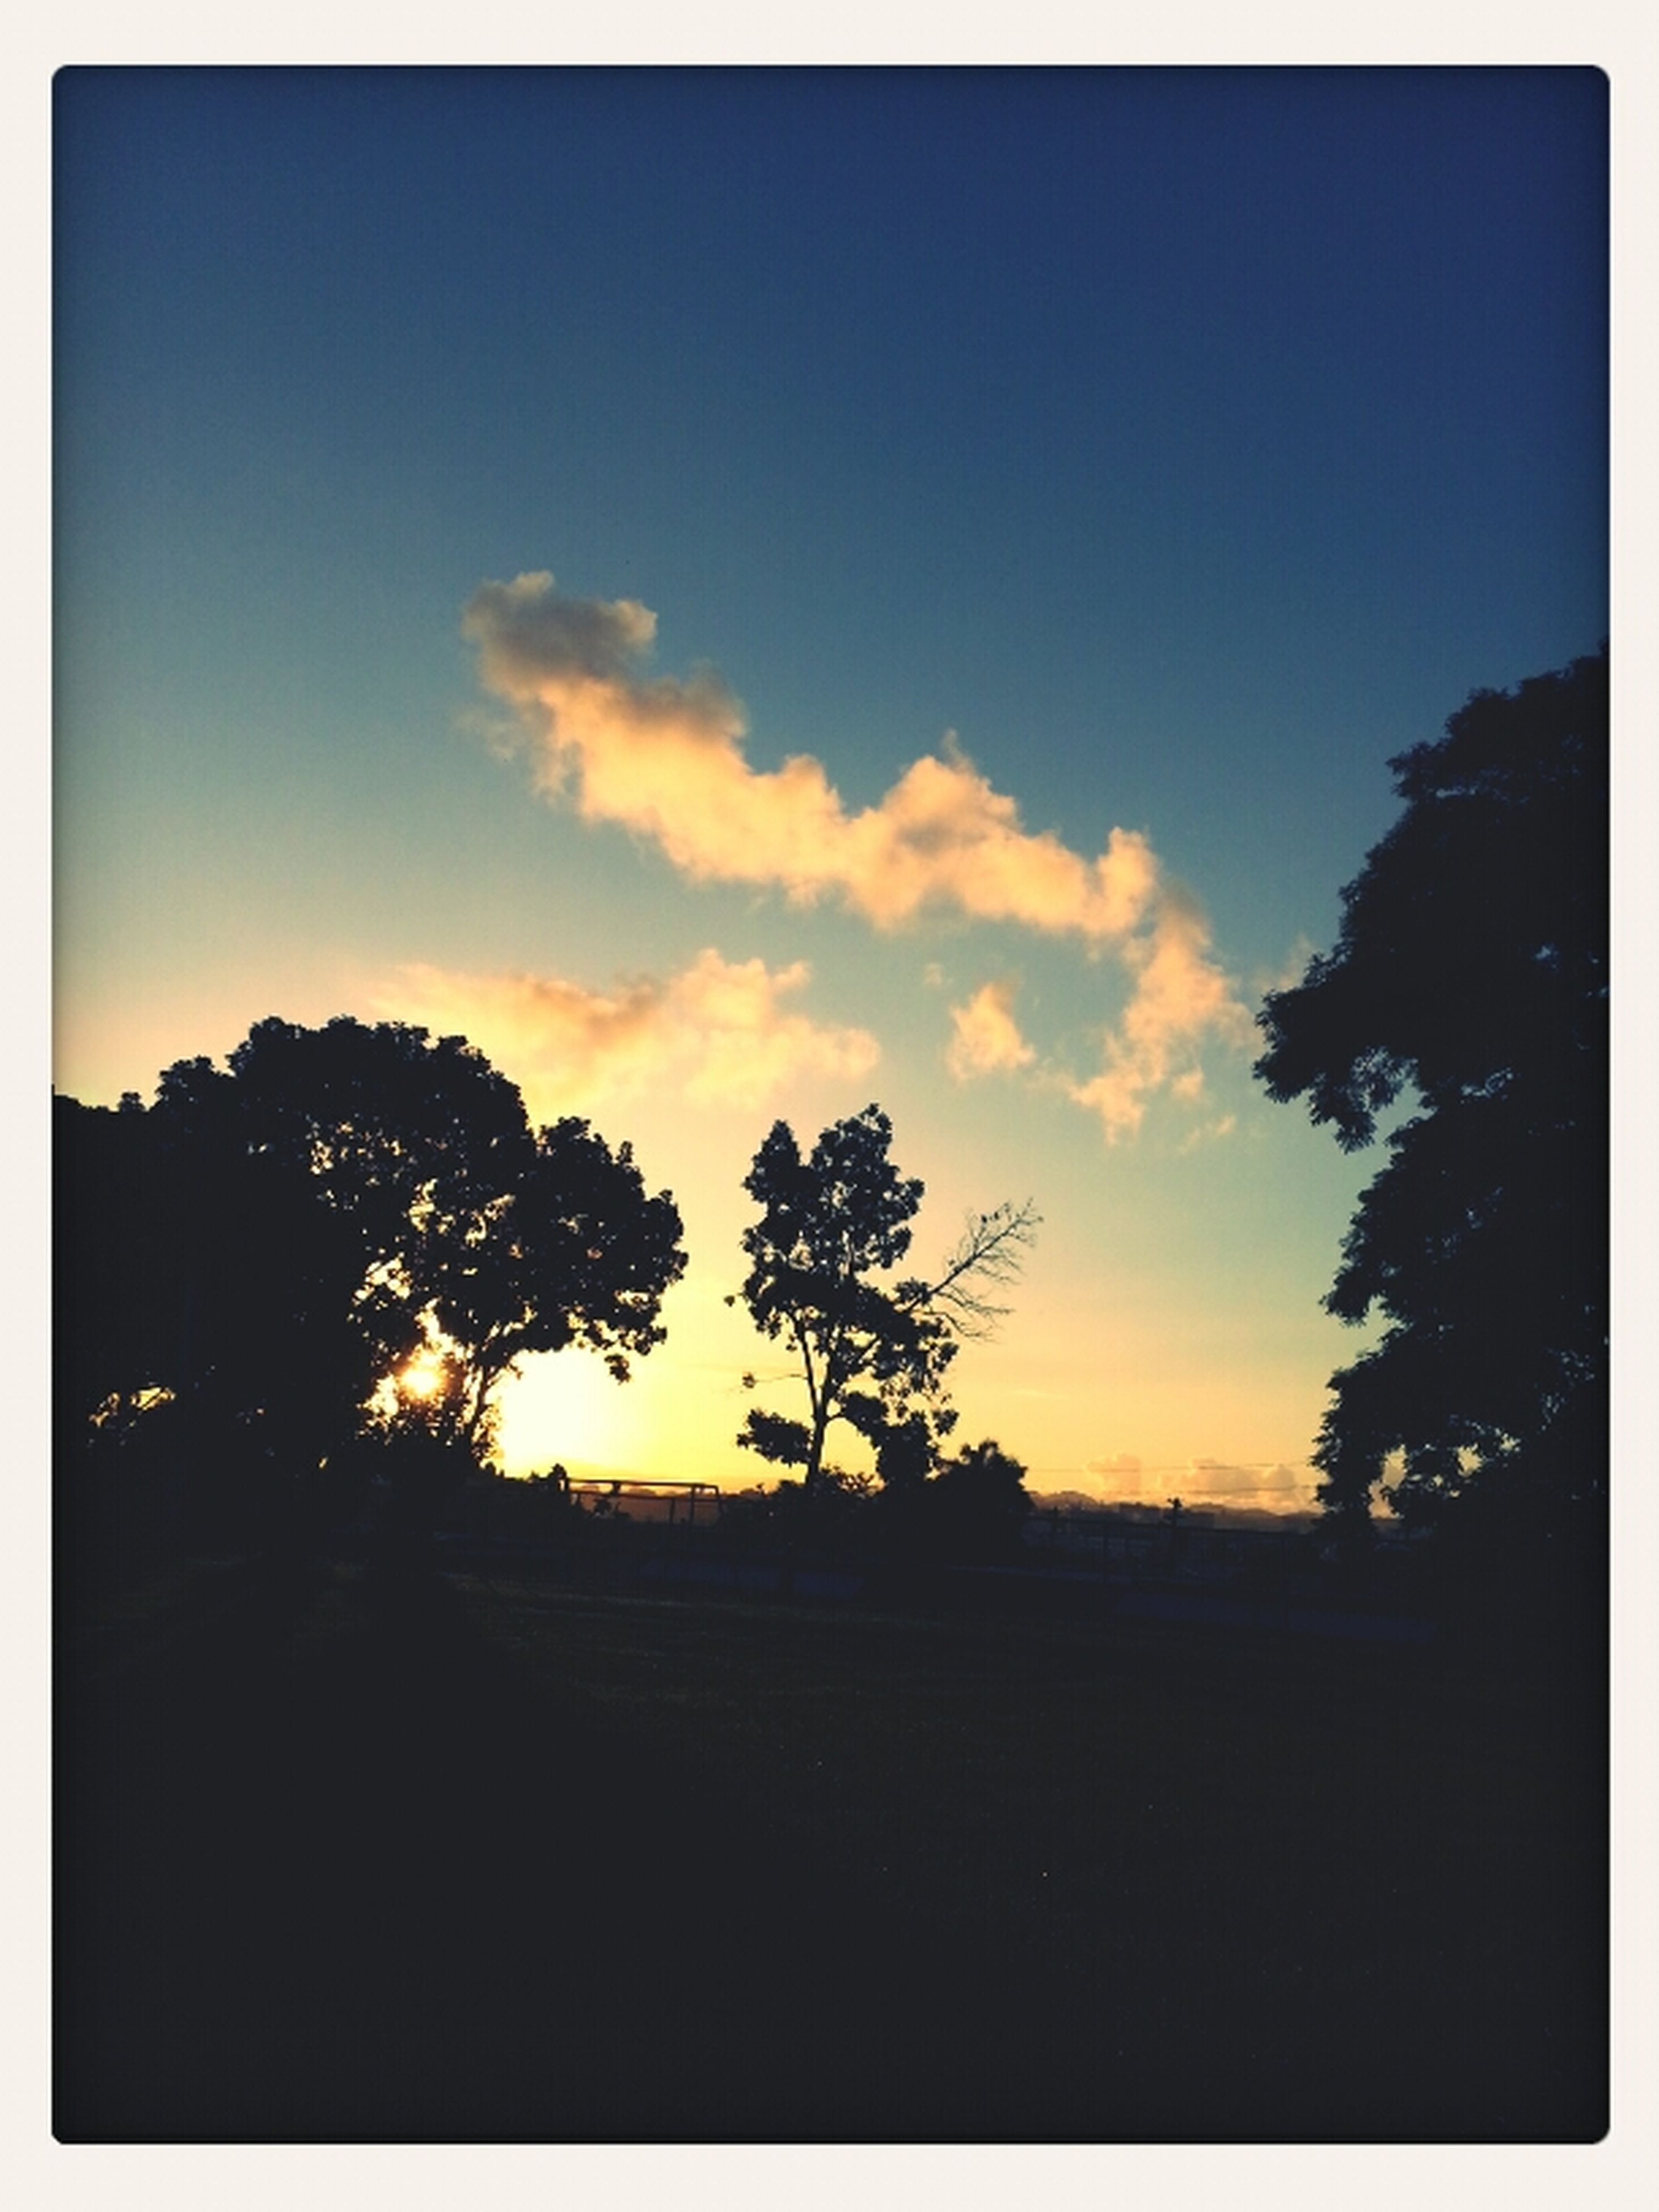 silhouette, sunset, tree, sky, transfer print, tranquil scene, tranquility, scenics, beauty in nature, landscape, auto post production filter, nature, dark, copy space, cloud - sky, cloud, field, dusk, blue, idyllic